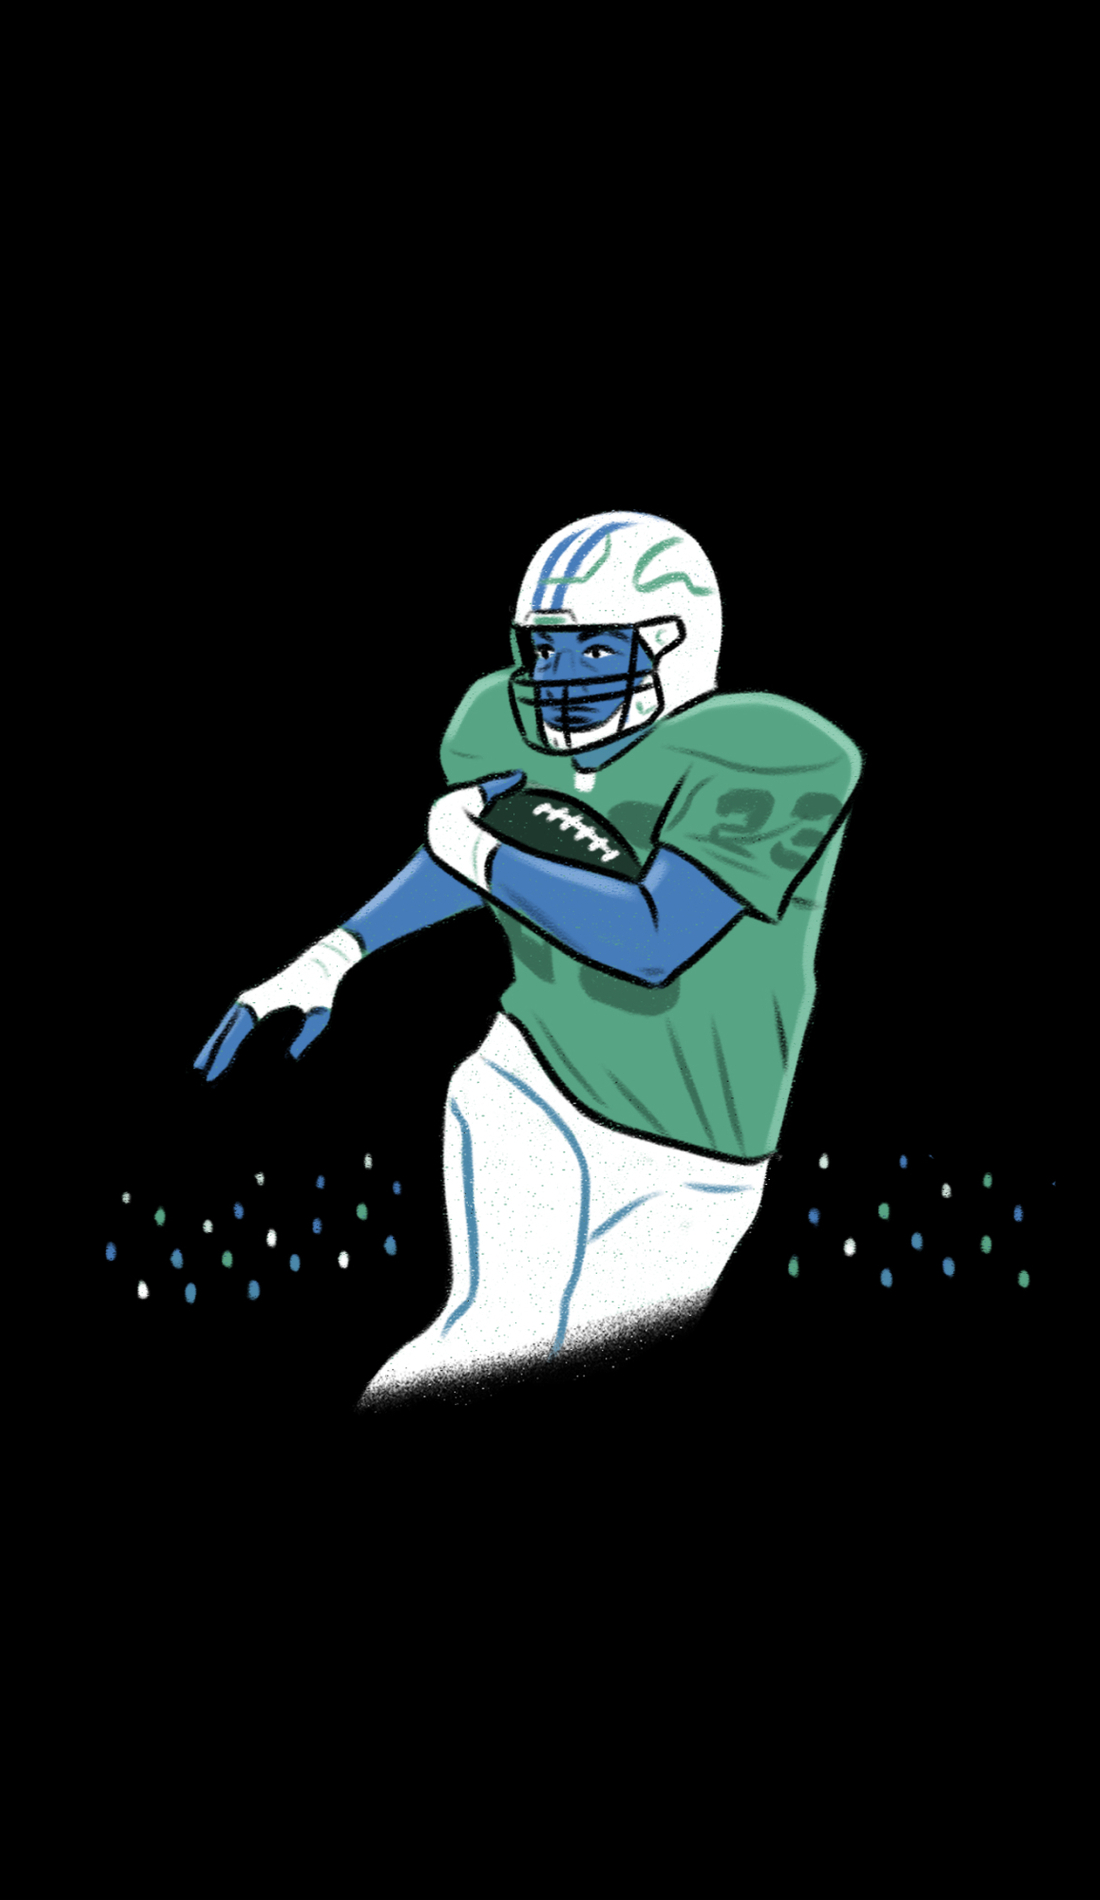 A New Hampshire Wildcats Football live event